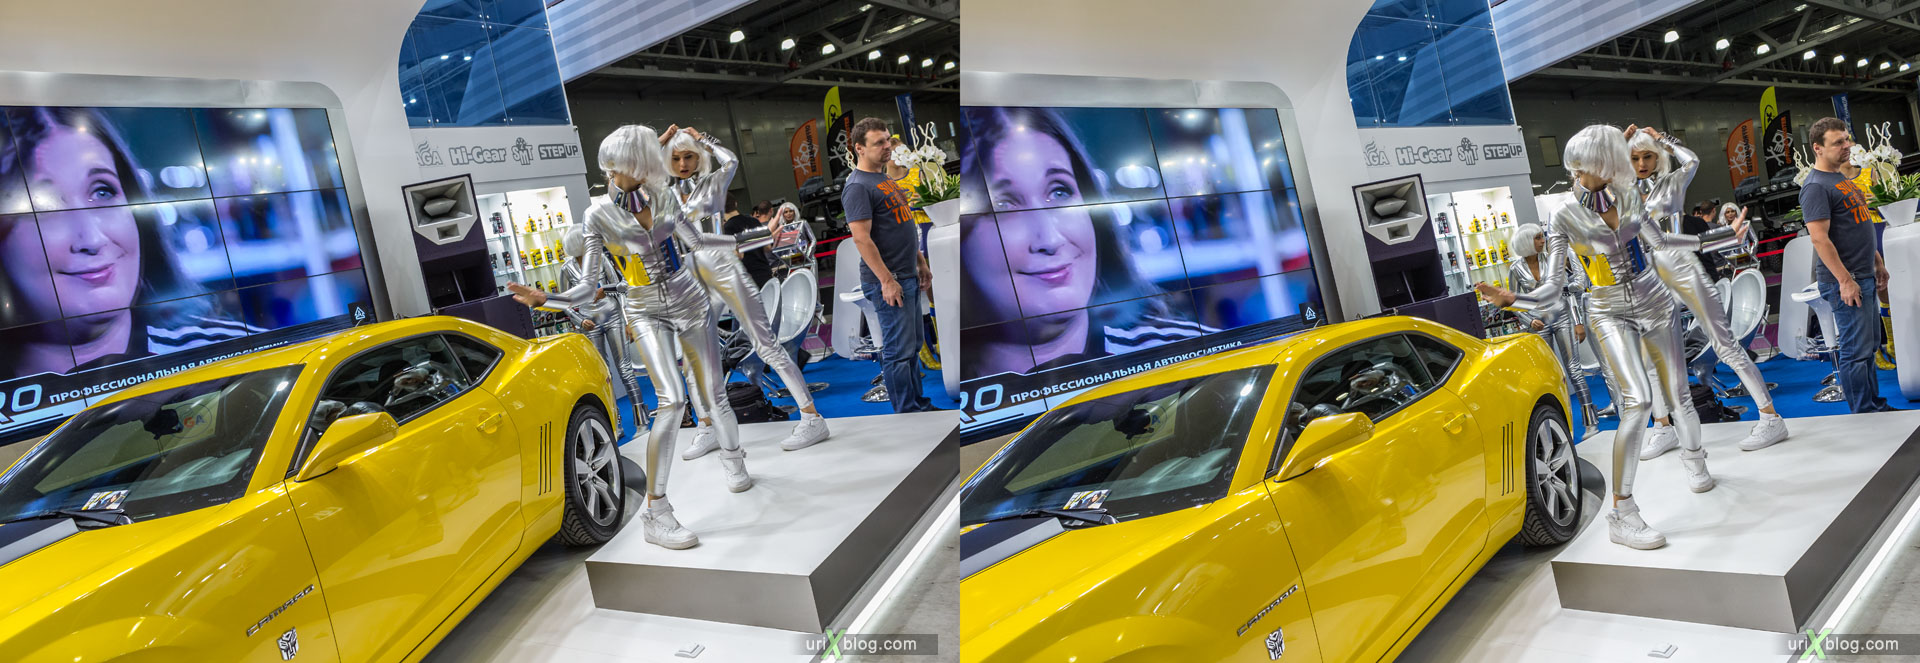 Moscow International Automobile Salon 2014, MIAS 2014, girls, models, Crocus Expo, Moscow, Russia, 3D, stereo pair, cross-eyed, crossview, cross view stereo pair, stereoscopic, 2014